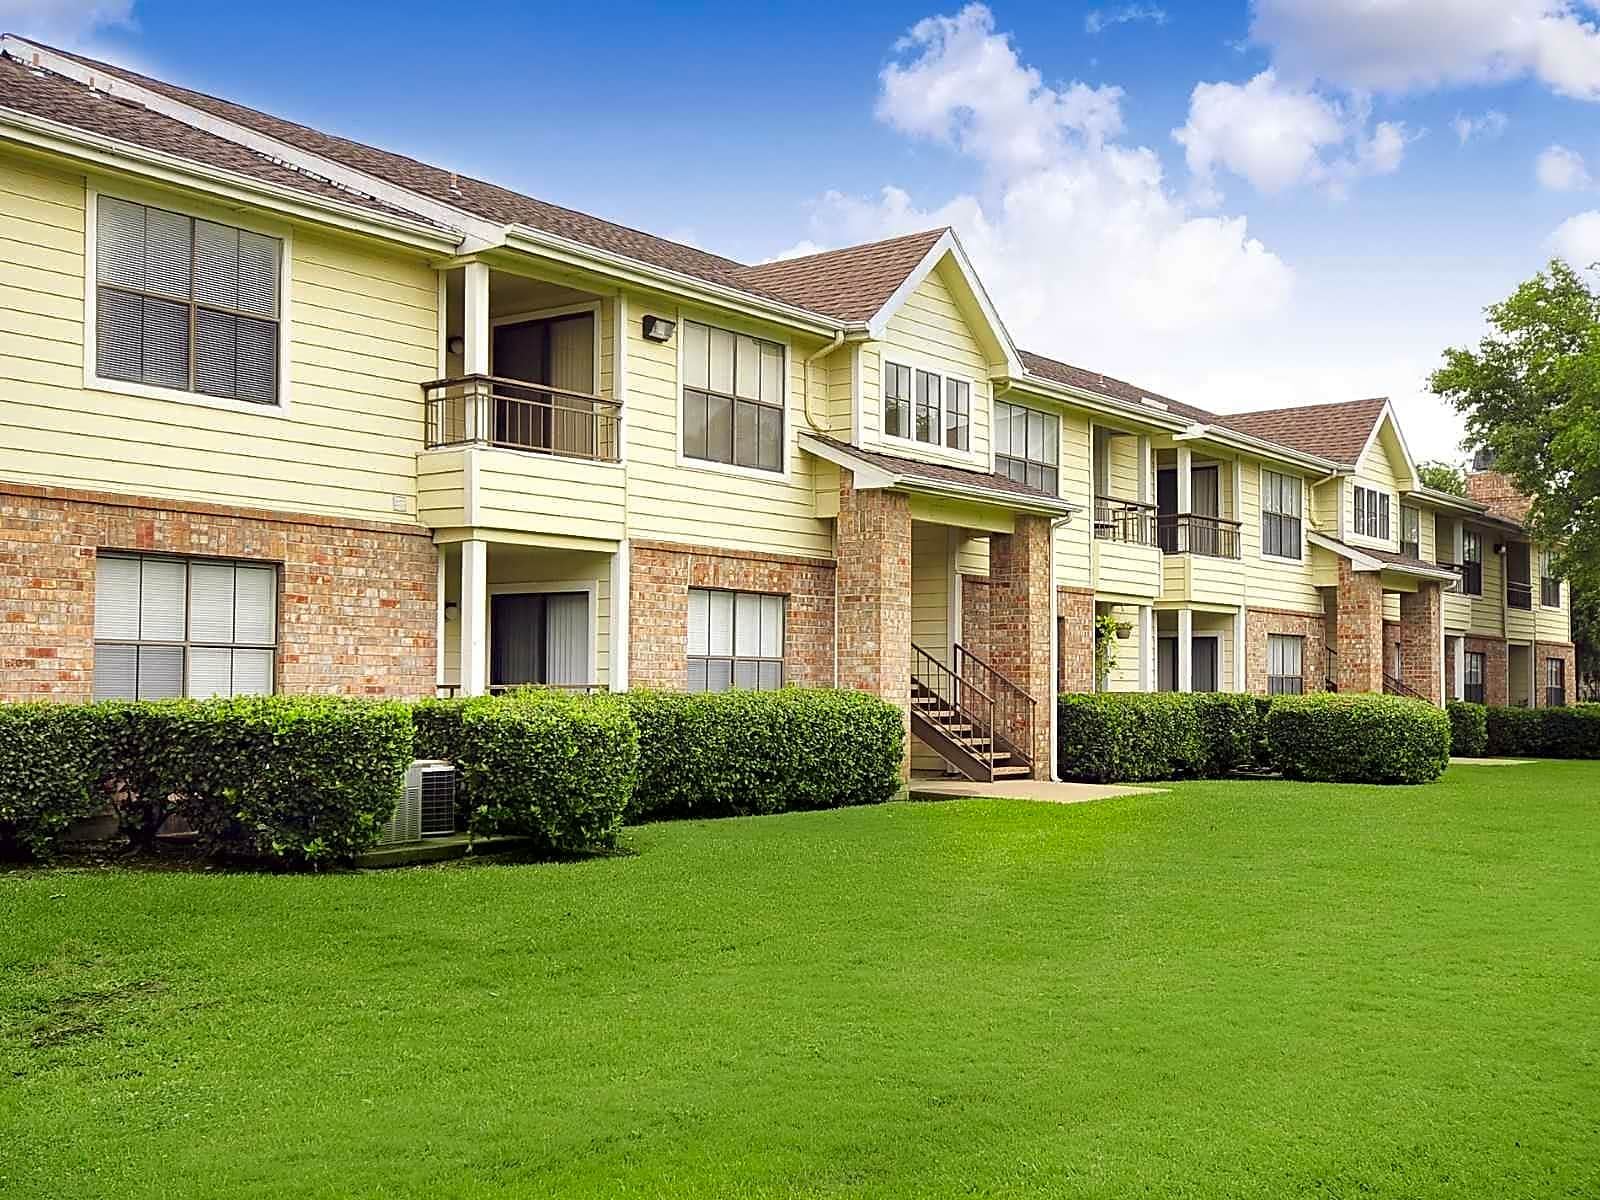 Cottages At Tulane Apartments - Plano, TX 75093